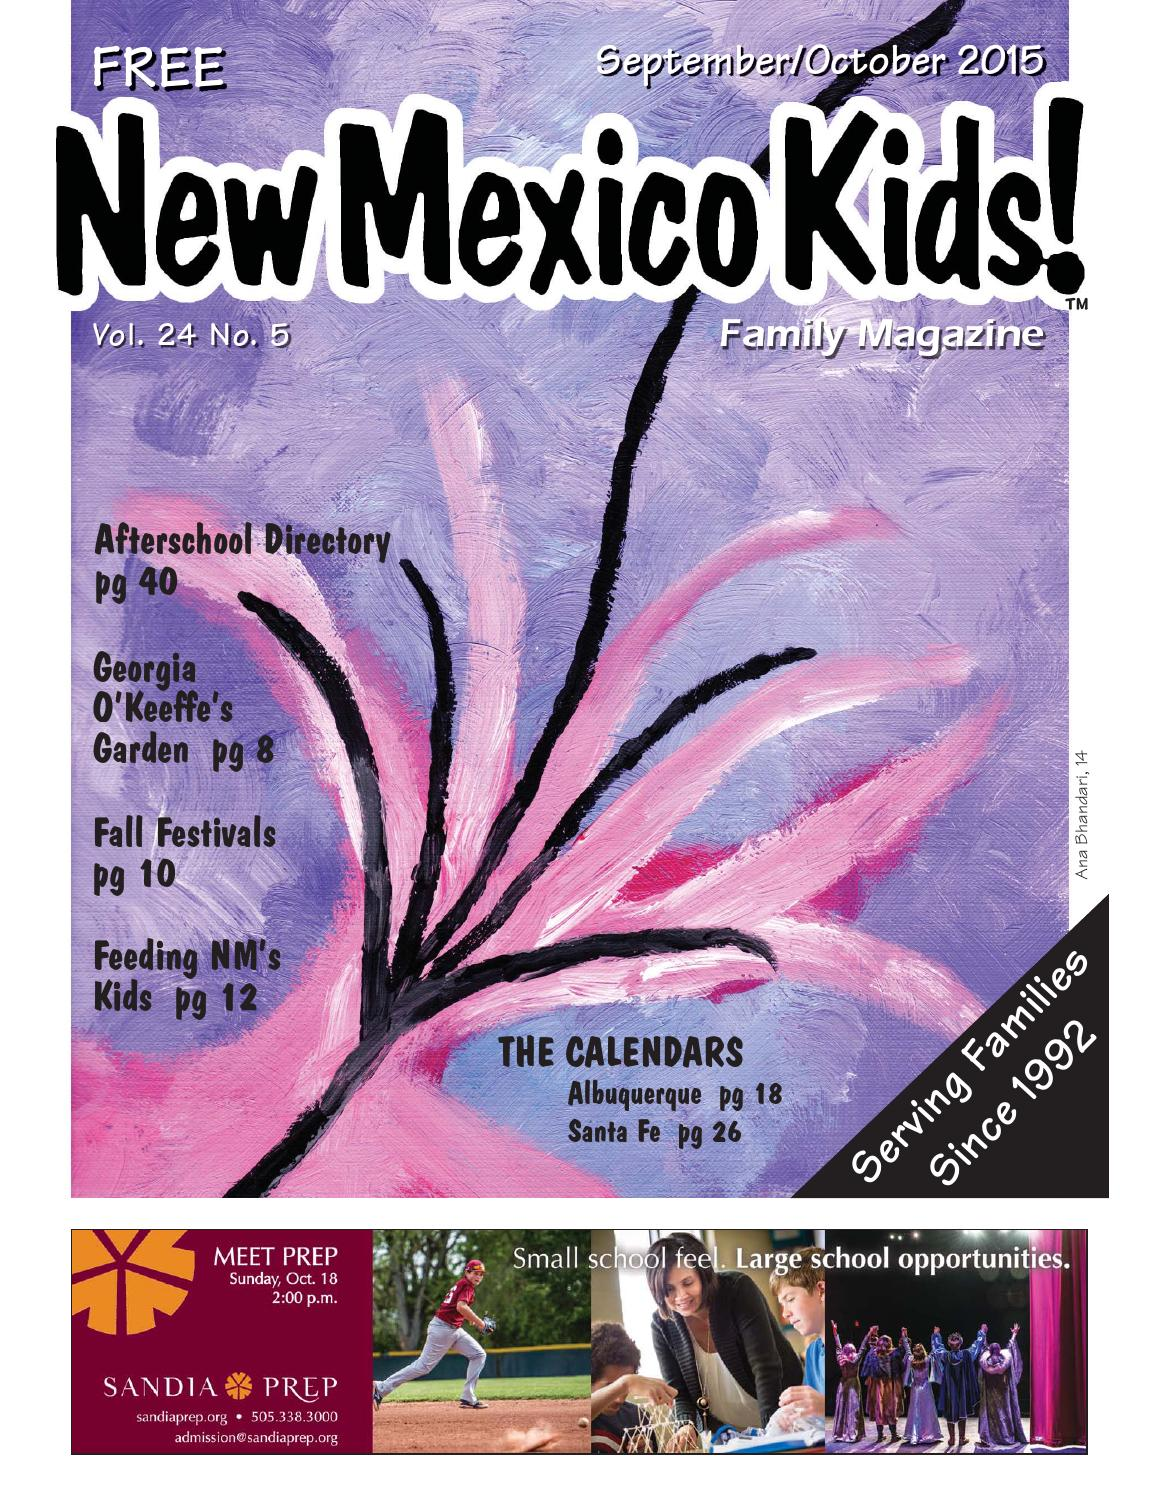 New mexico kids septemberoctober 2015 by new mexico kids issuu jeuxipadfo Image collections